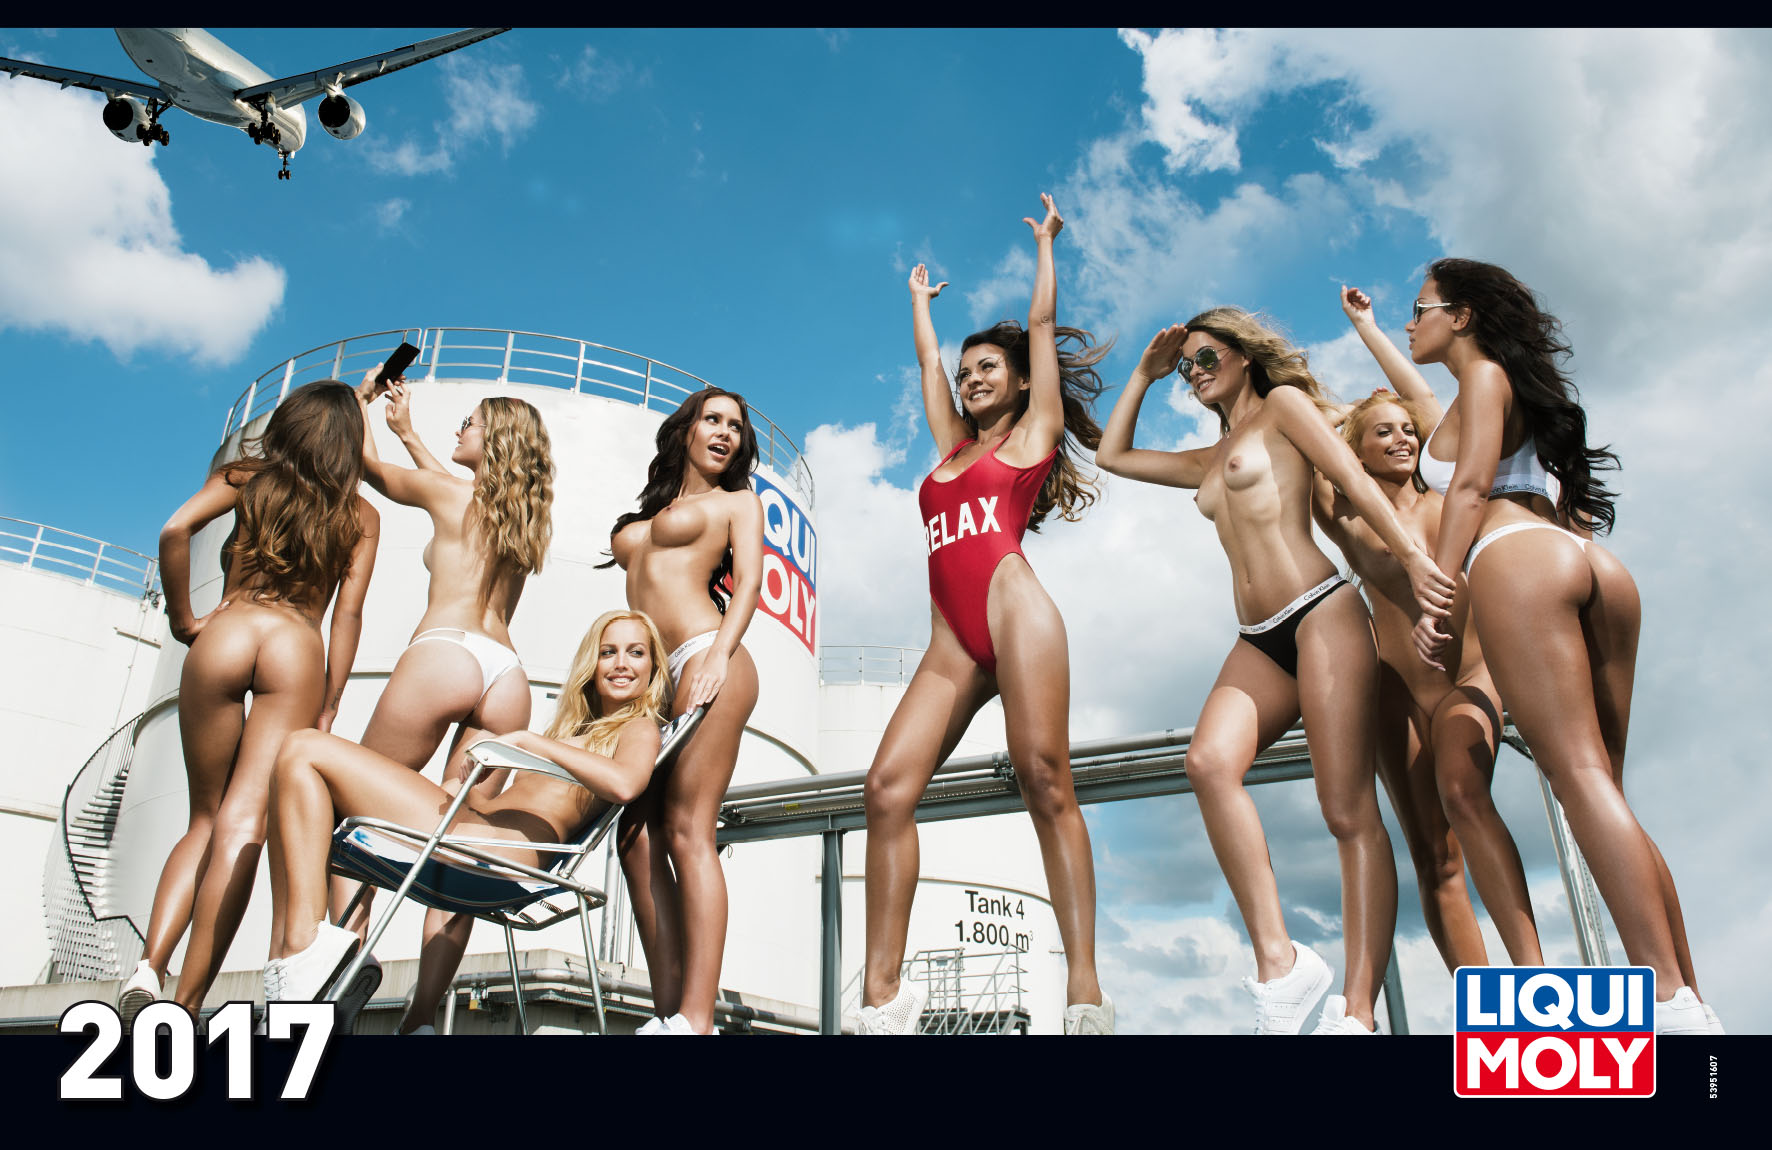 CALENDARIO LIQUI MOLY 2017 CHICAS